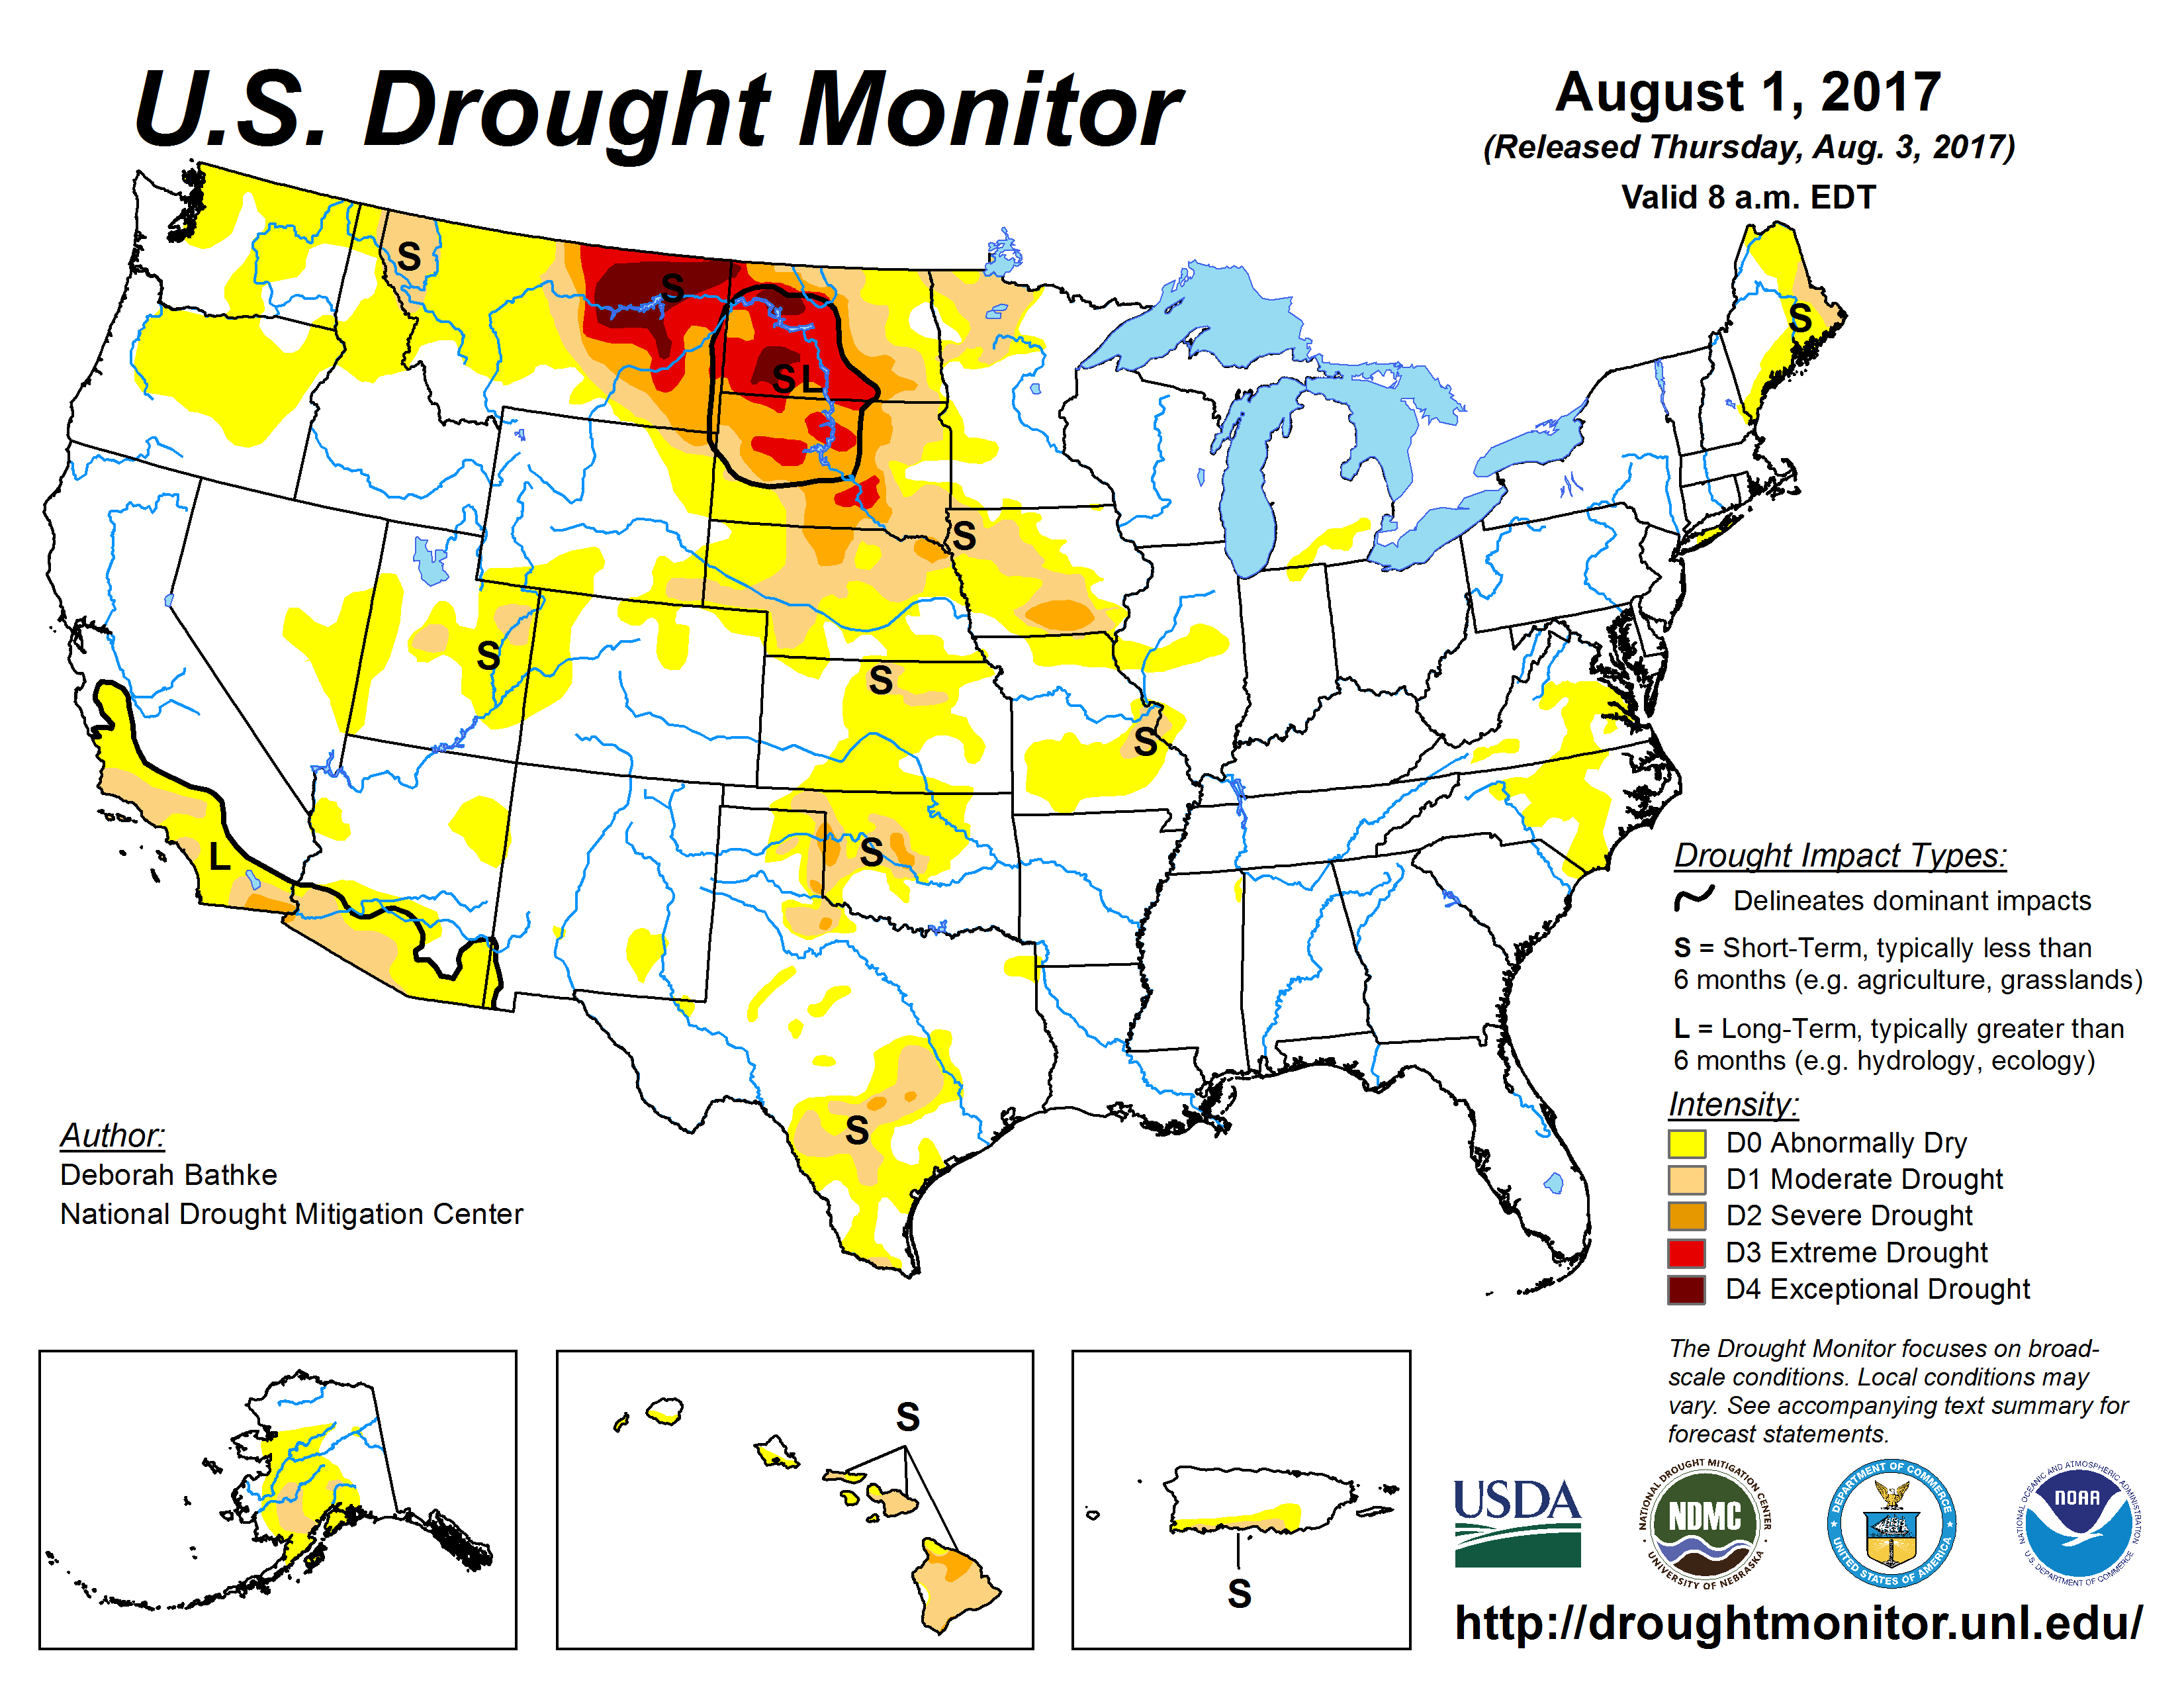 The U.S. Drought Monitor drought map valid August 1, 2017